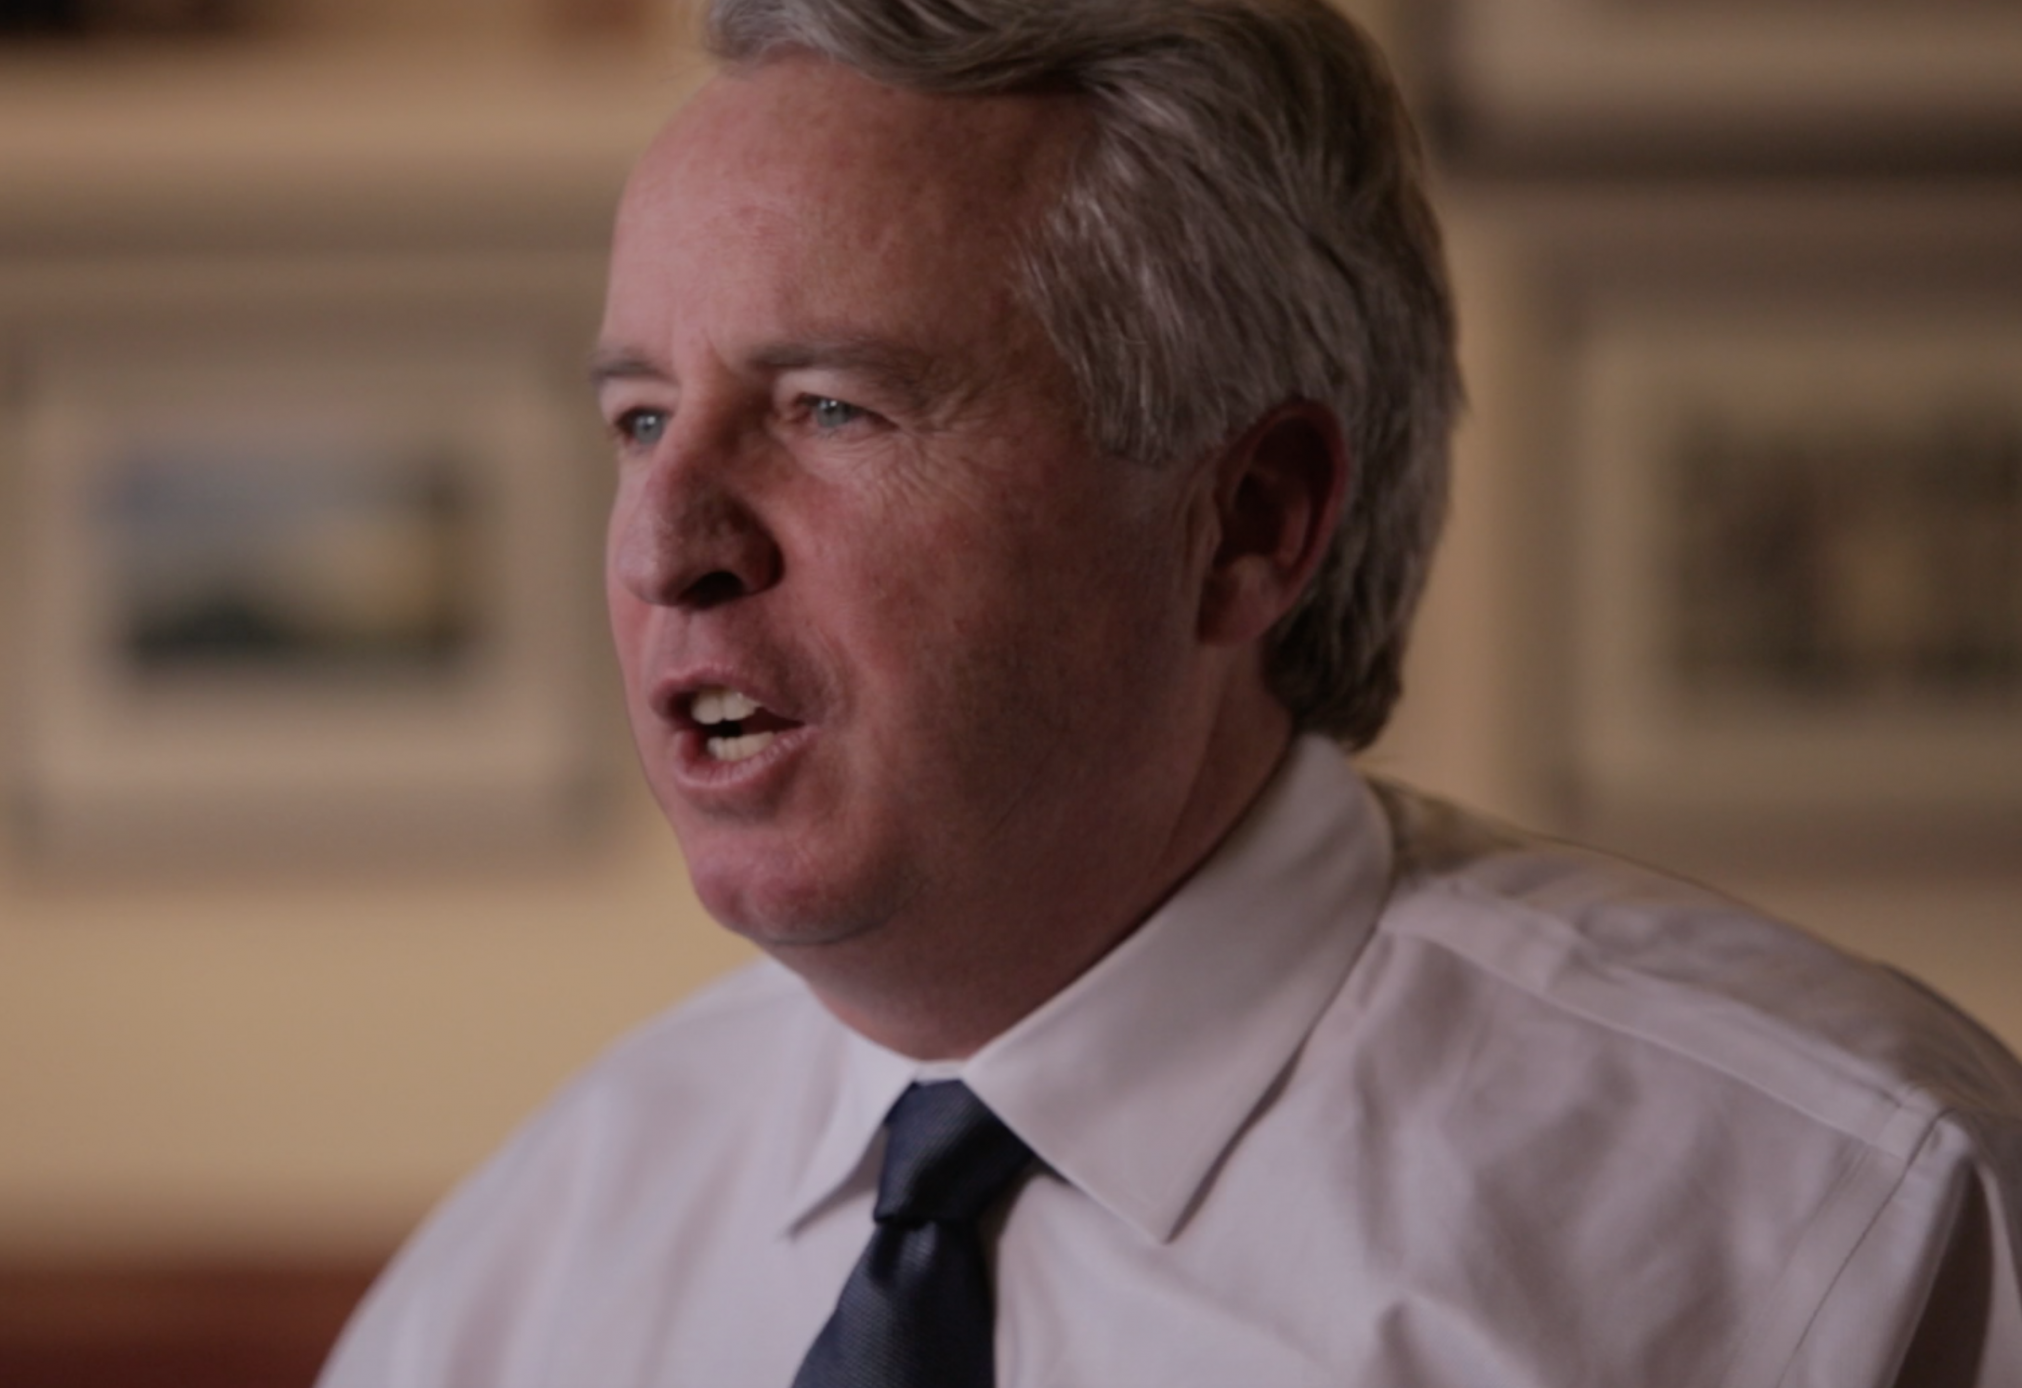 Chris Kennedy Enters Illinois Governor's Race